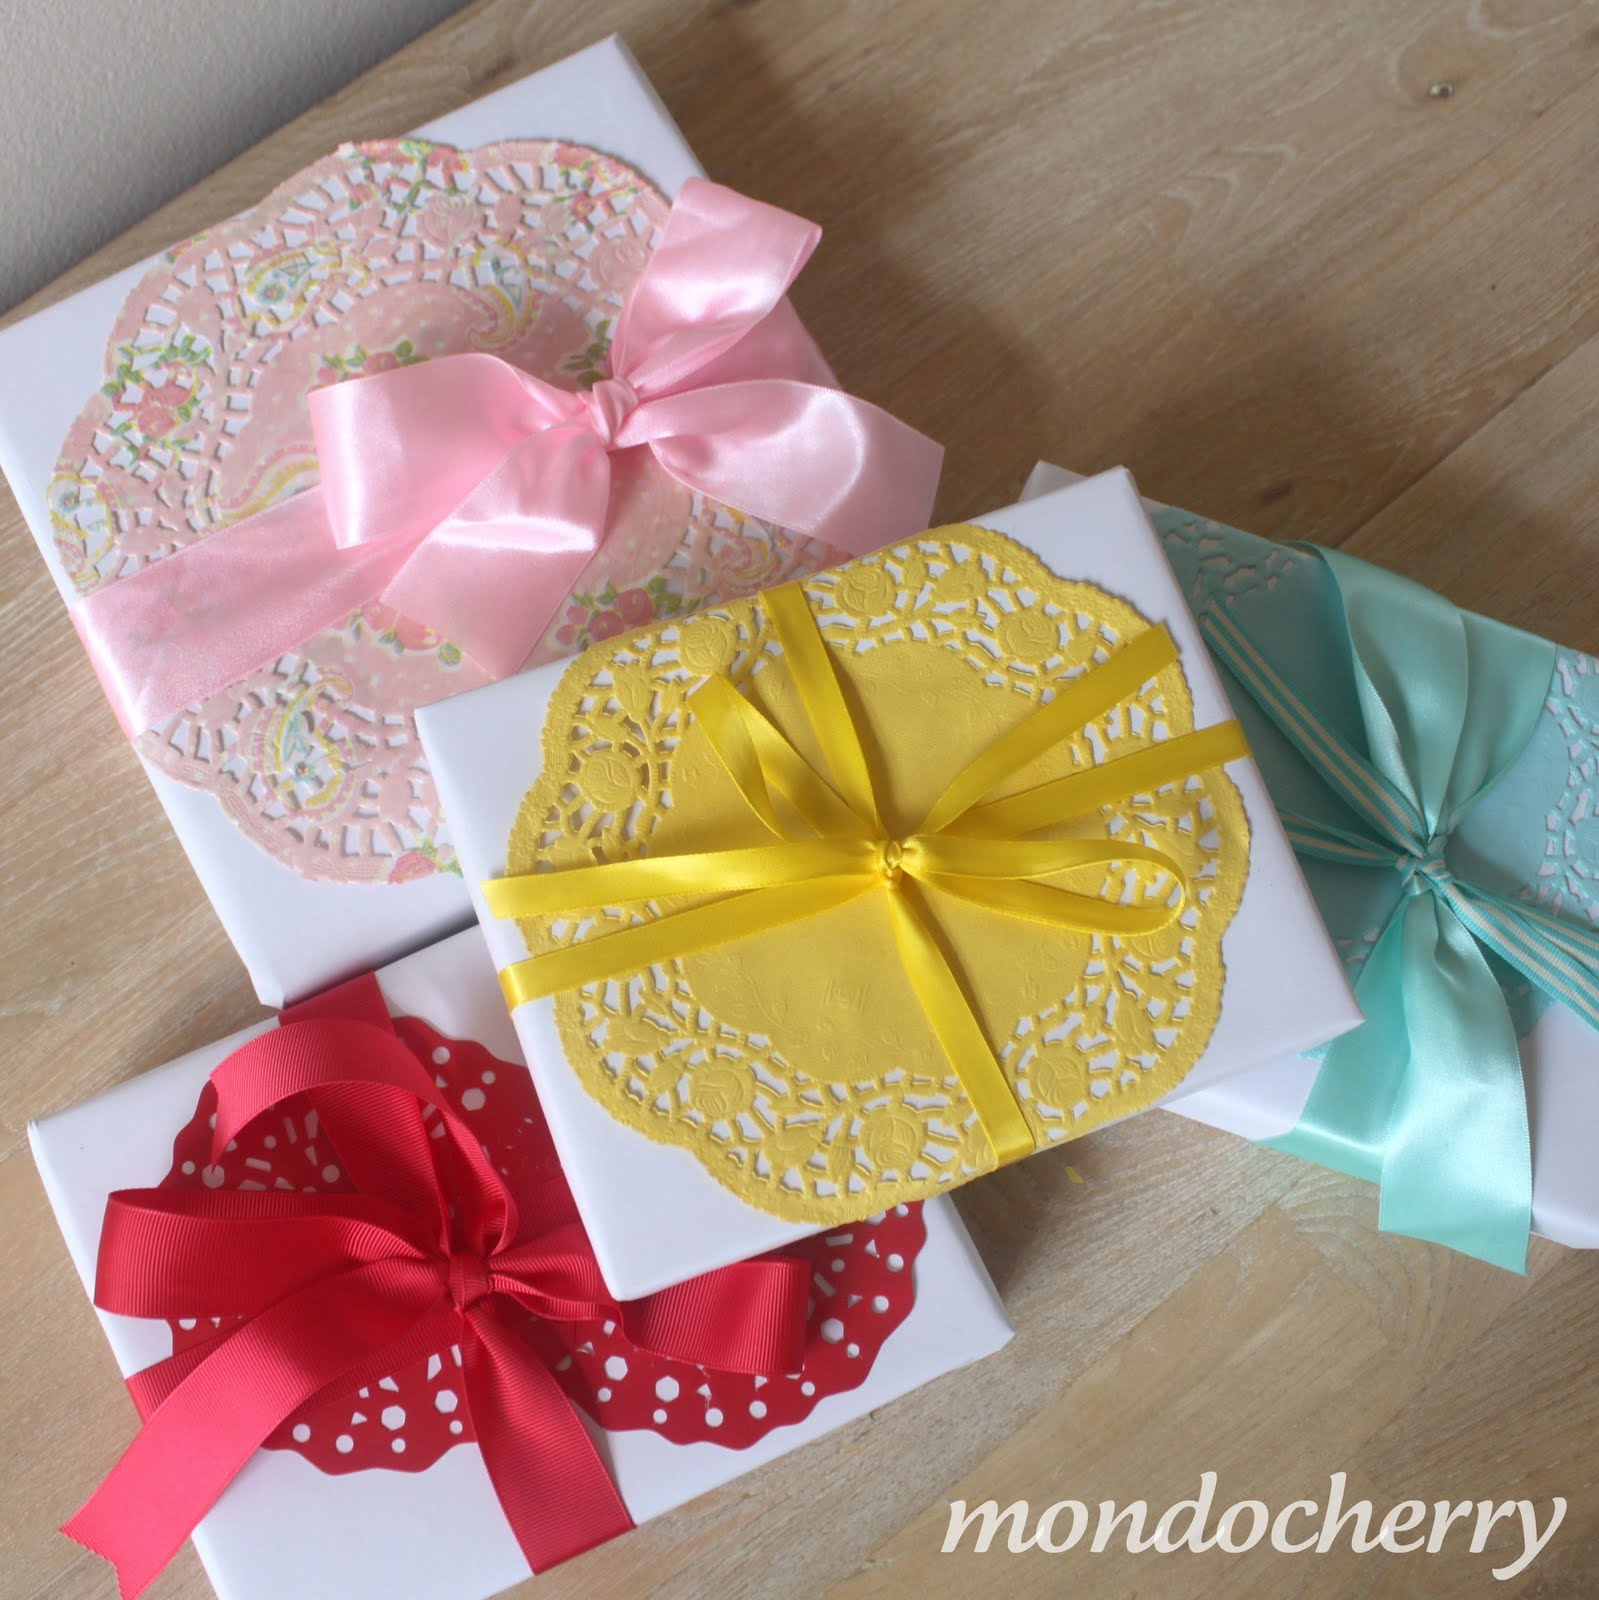 A small bite of mondocherrygift wrapping on elladore